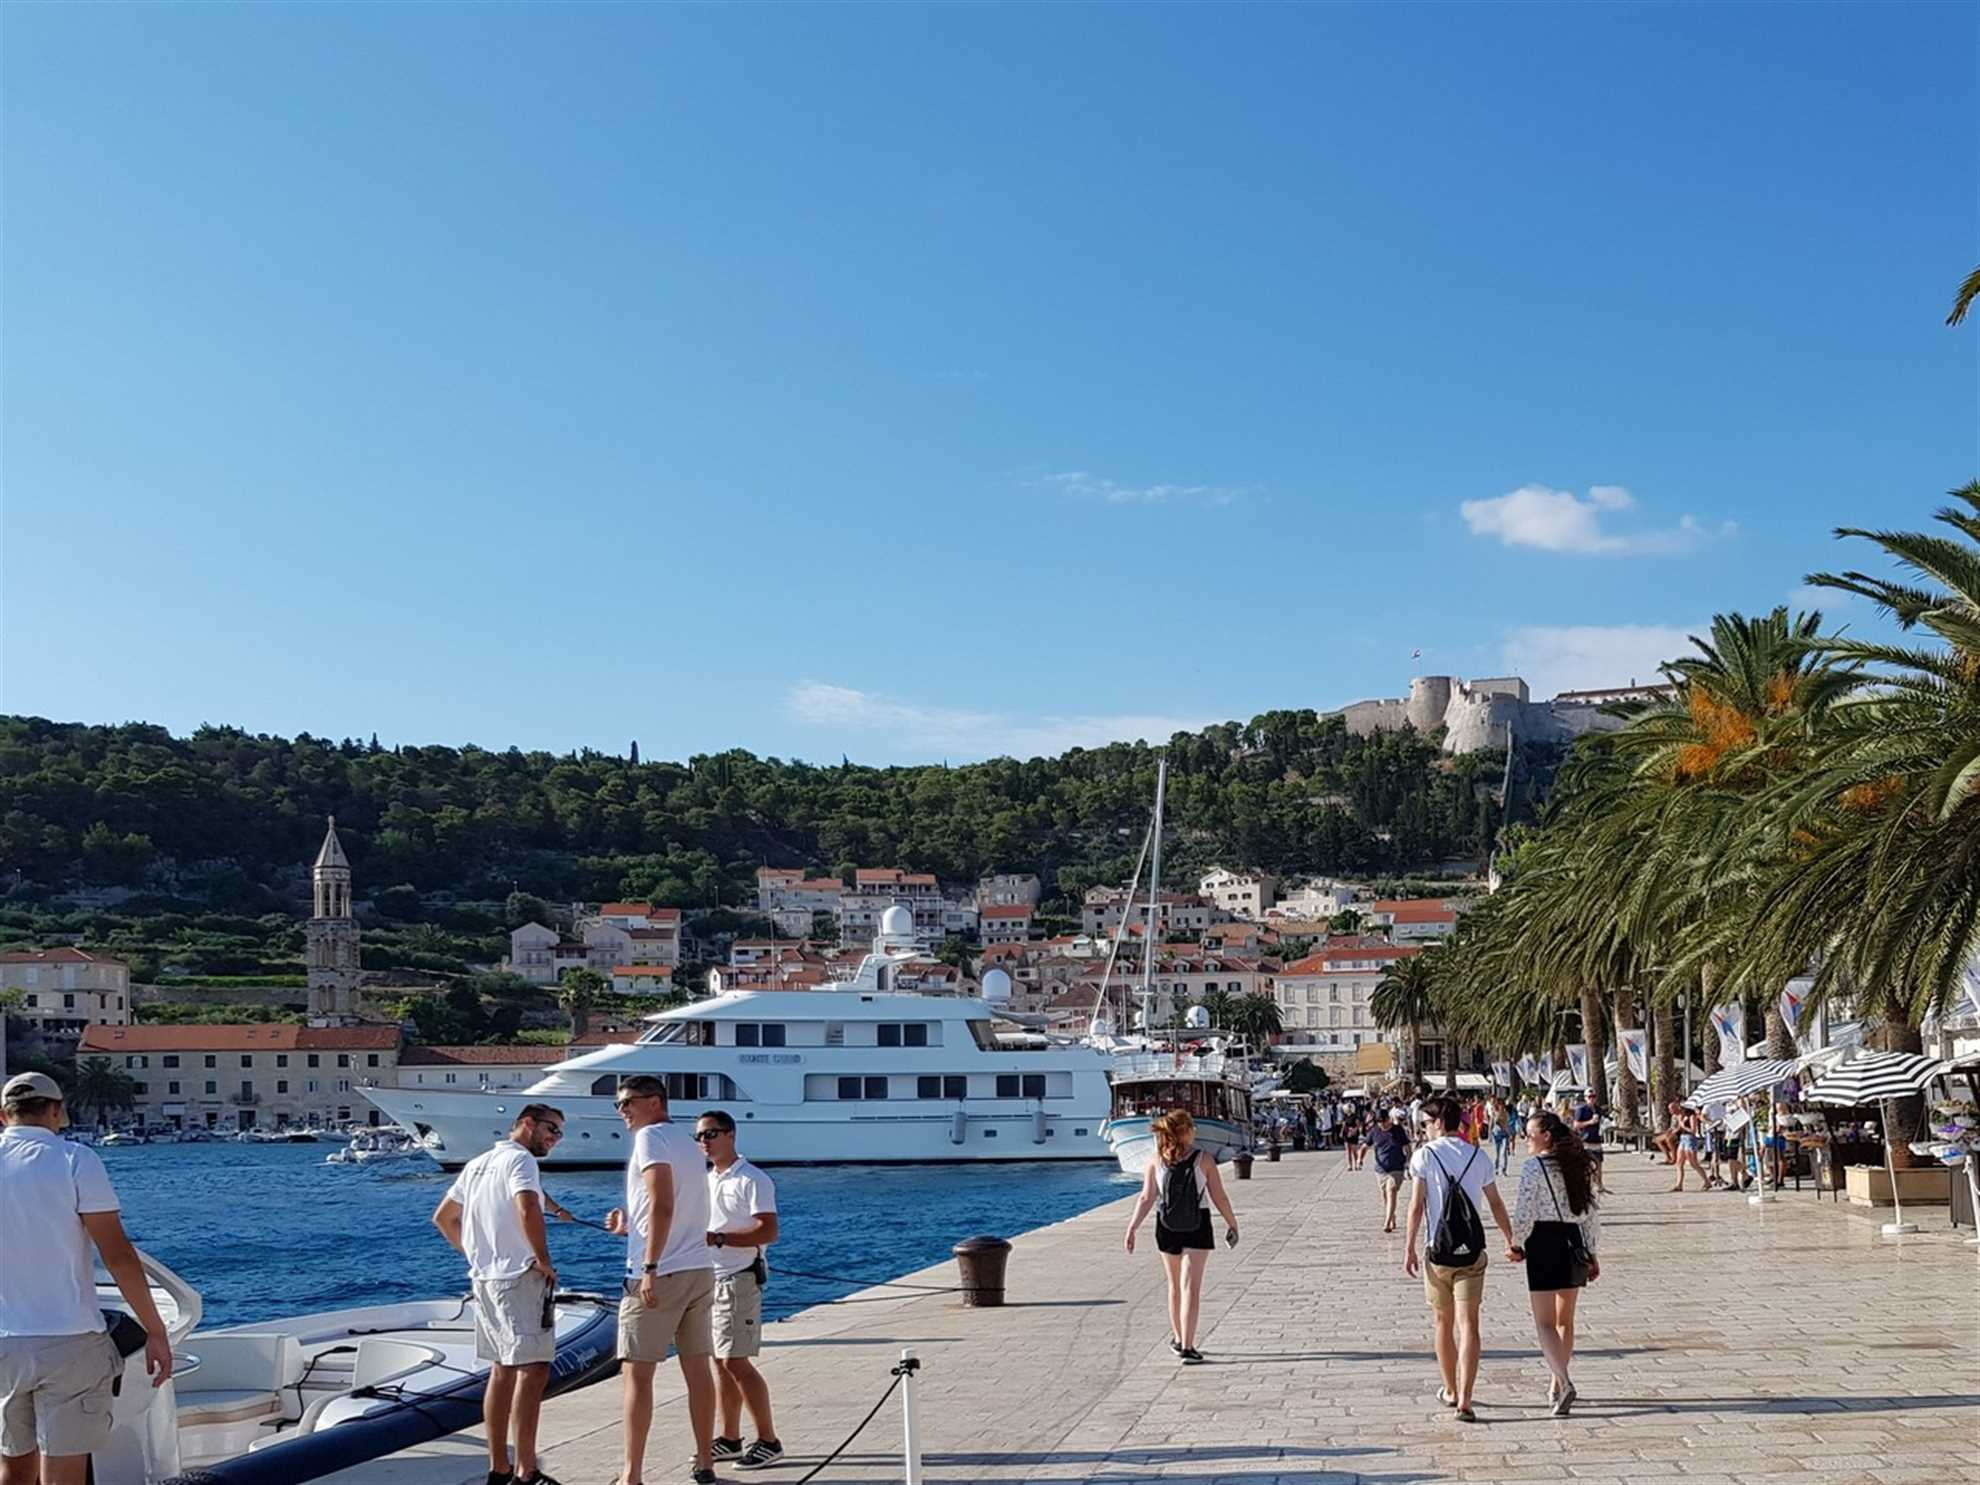 Arrival to port of Hvar